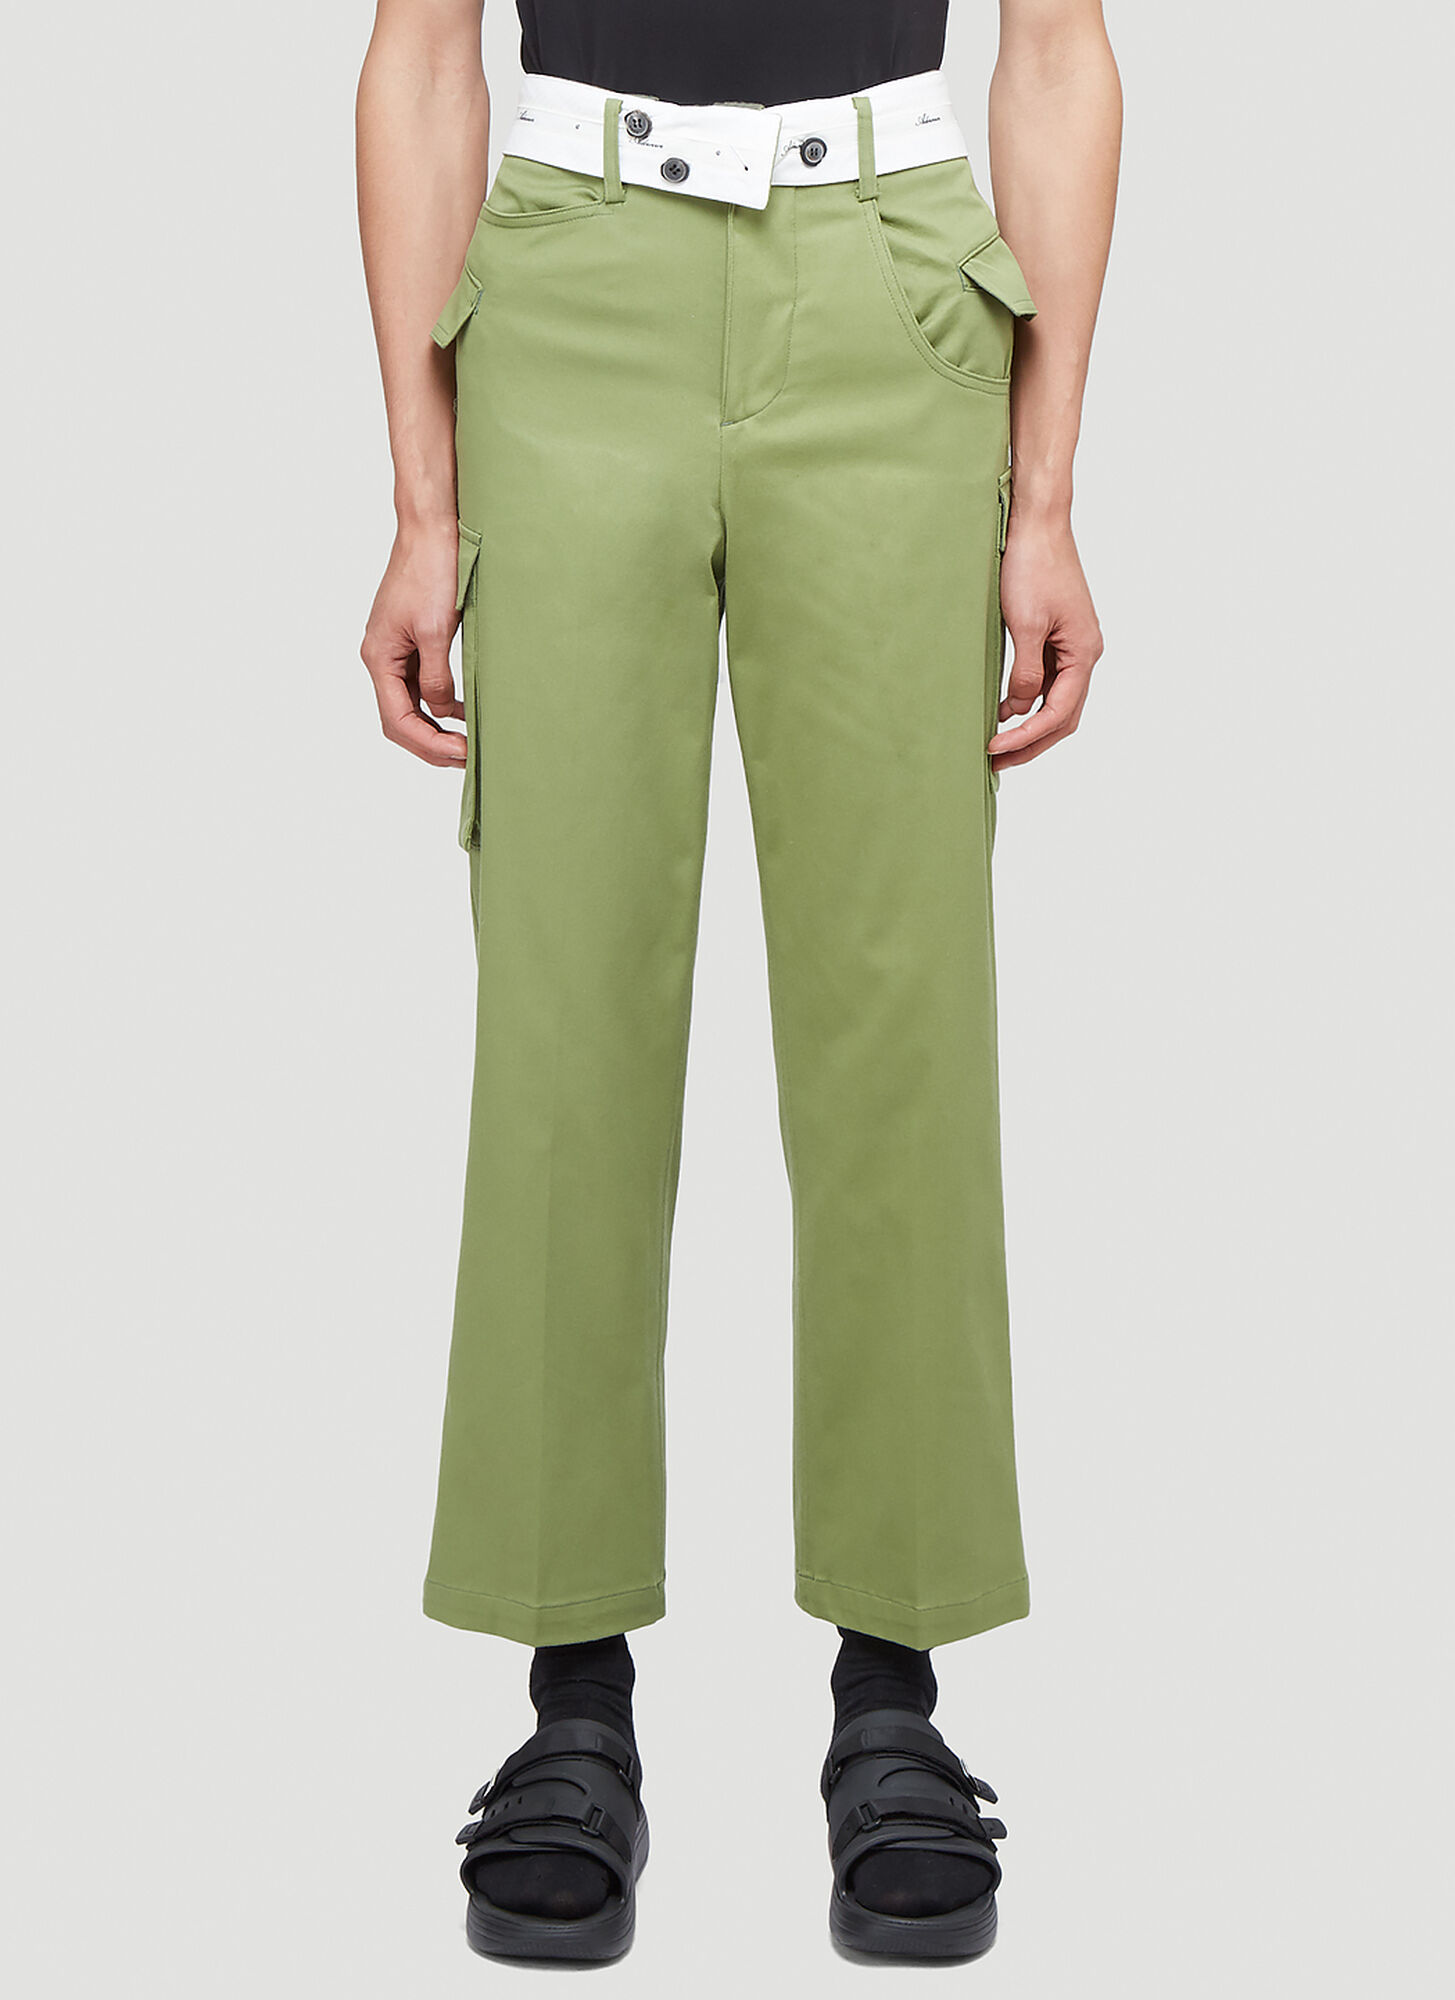 Ader Error Asymmetric Pants in Green